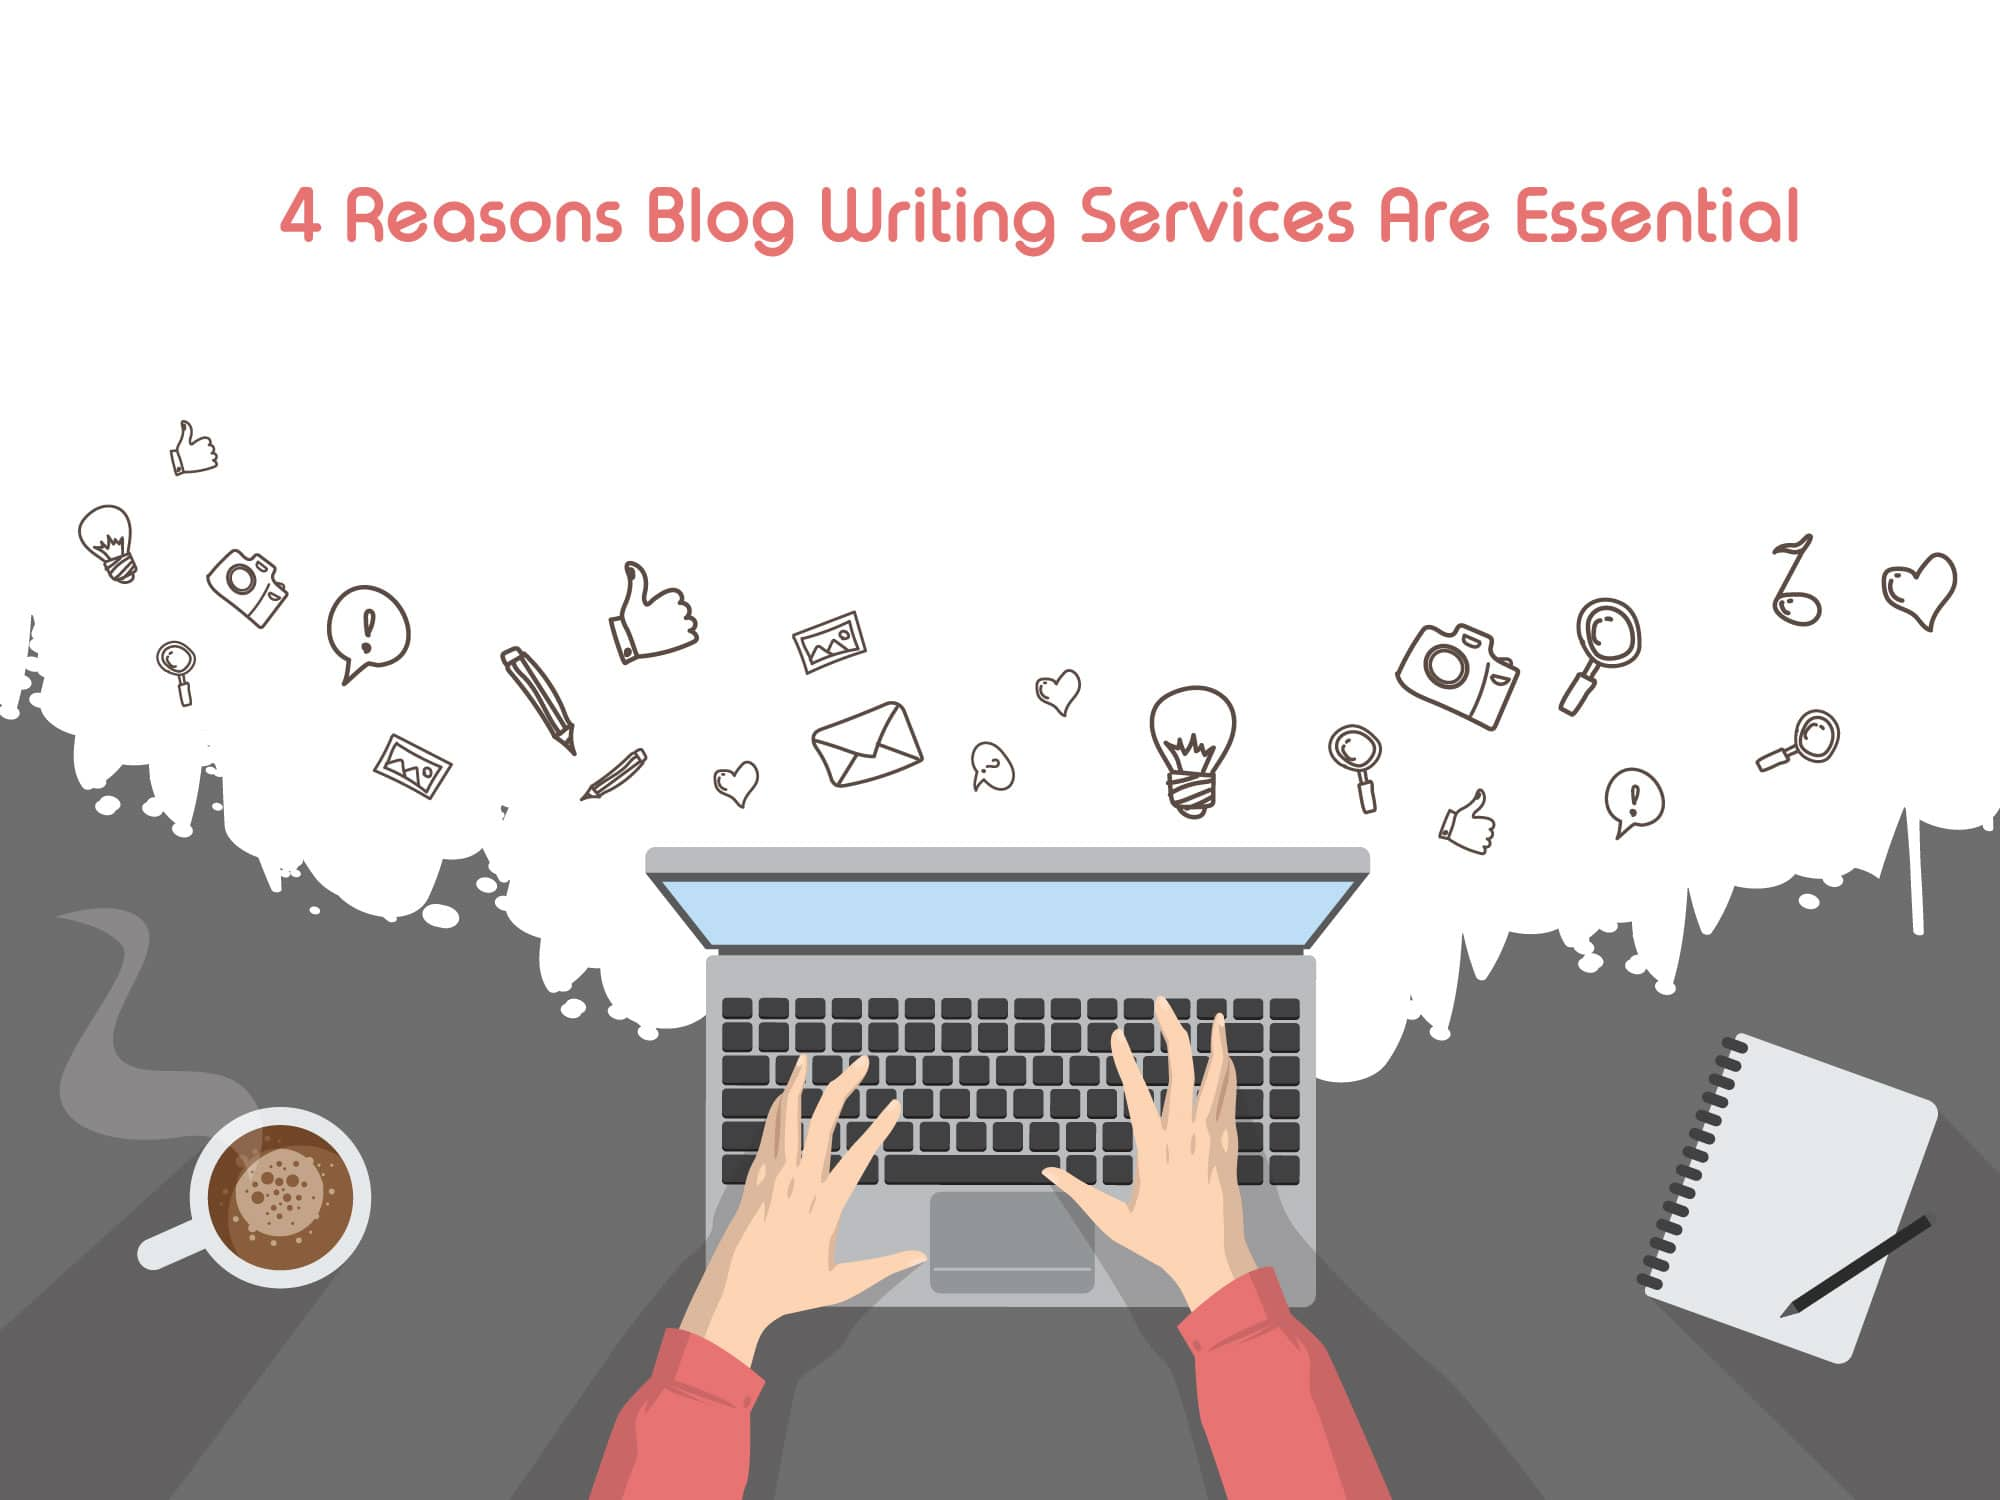 4 reasons blog writing services are essential